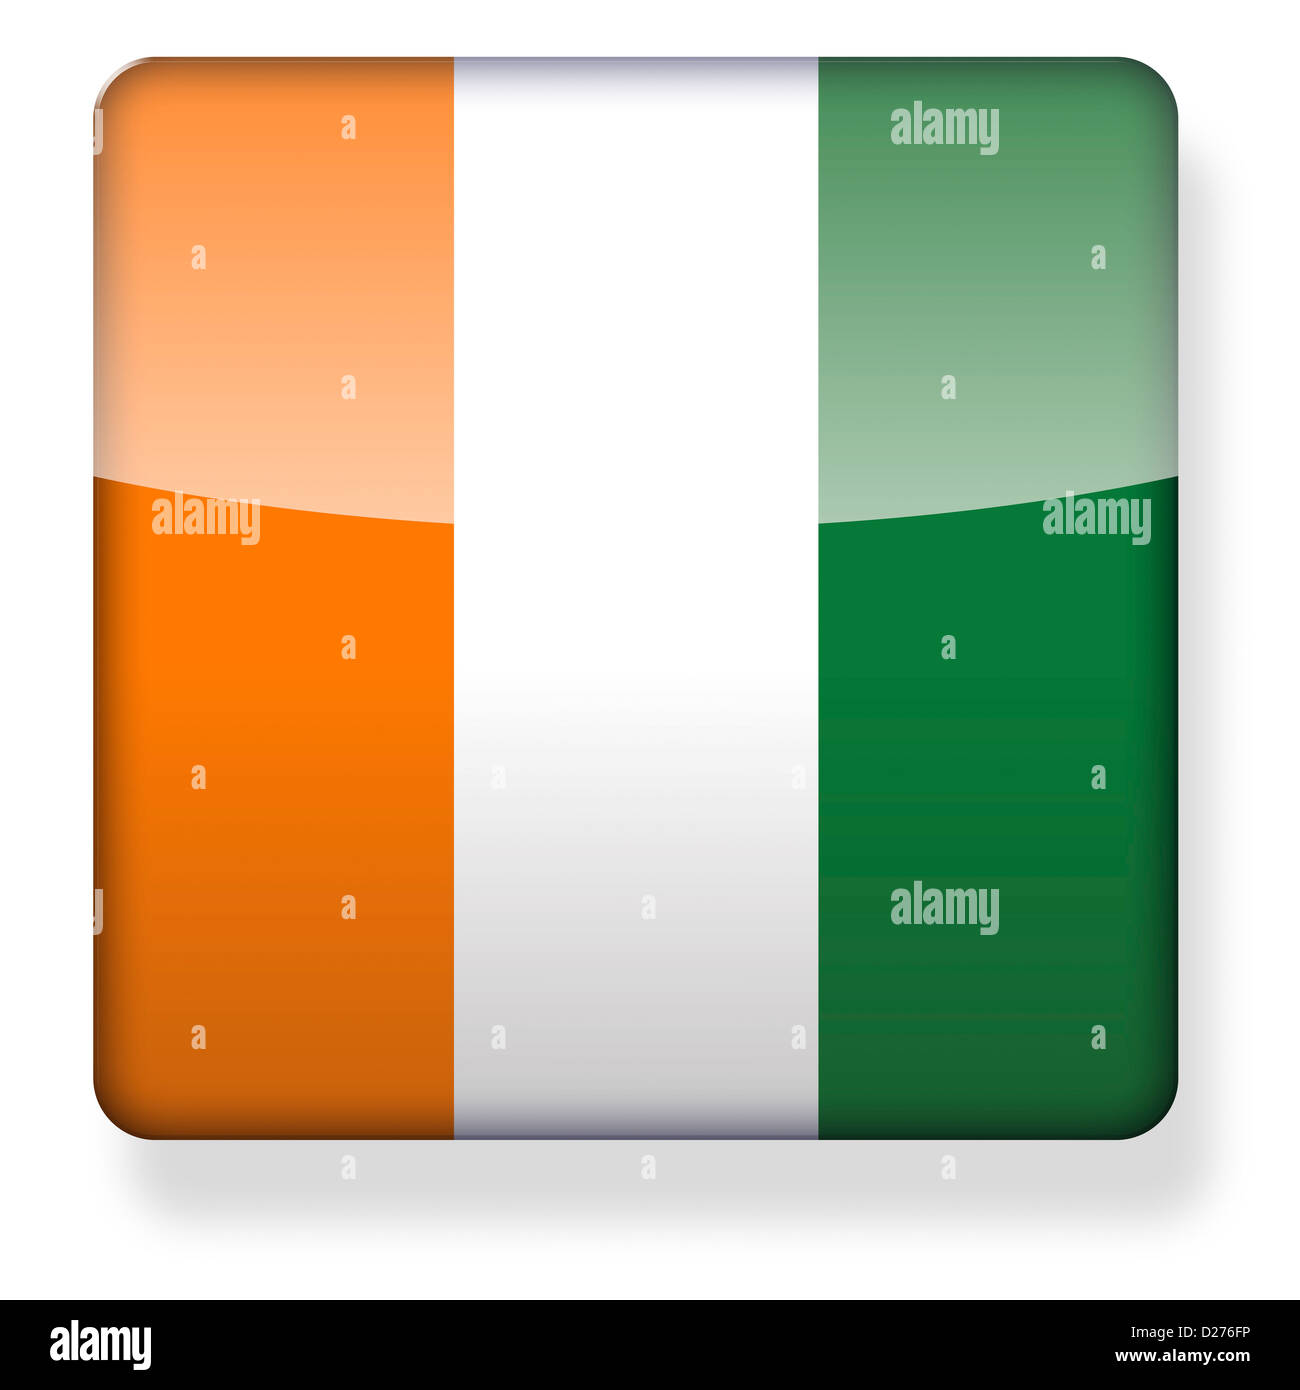 Cote d'Ivoire flag as an app icon. Clipping path included. - Stock Image